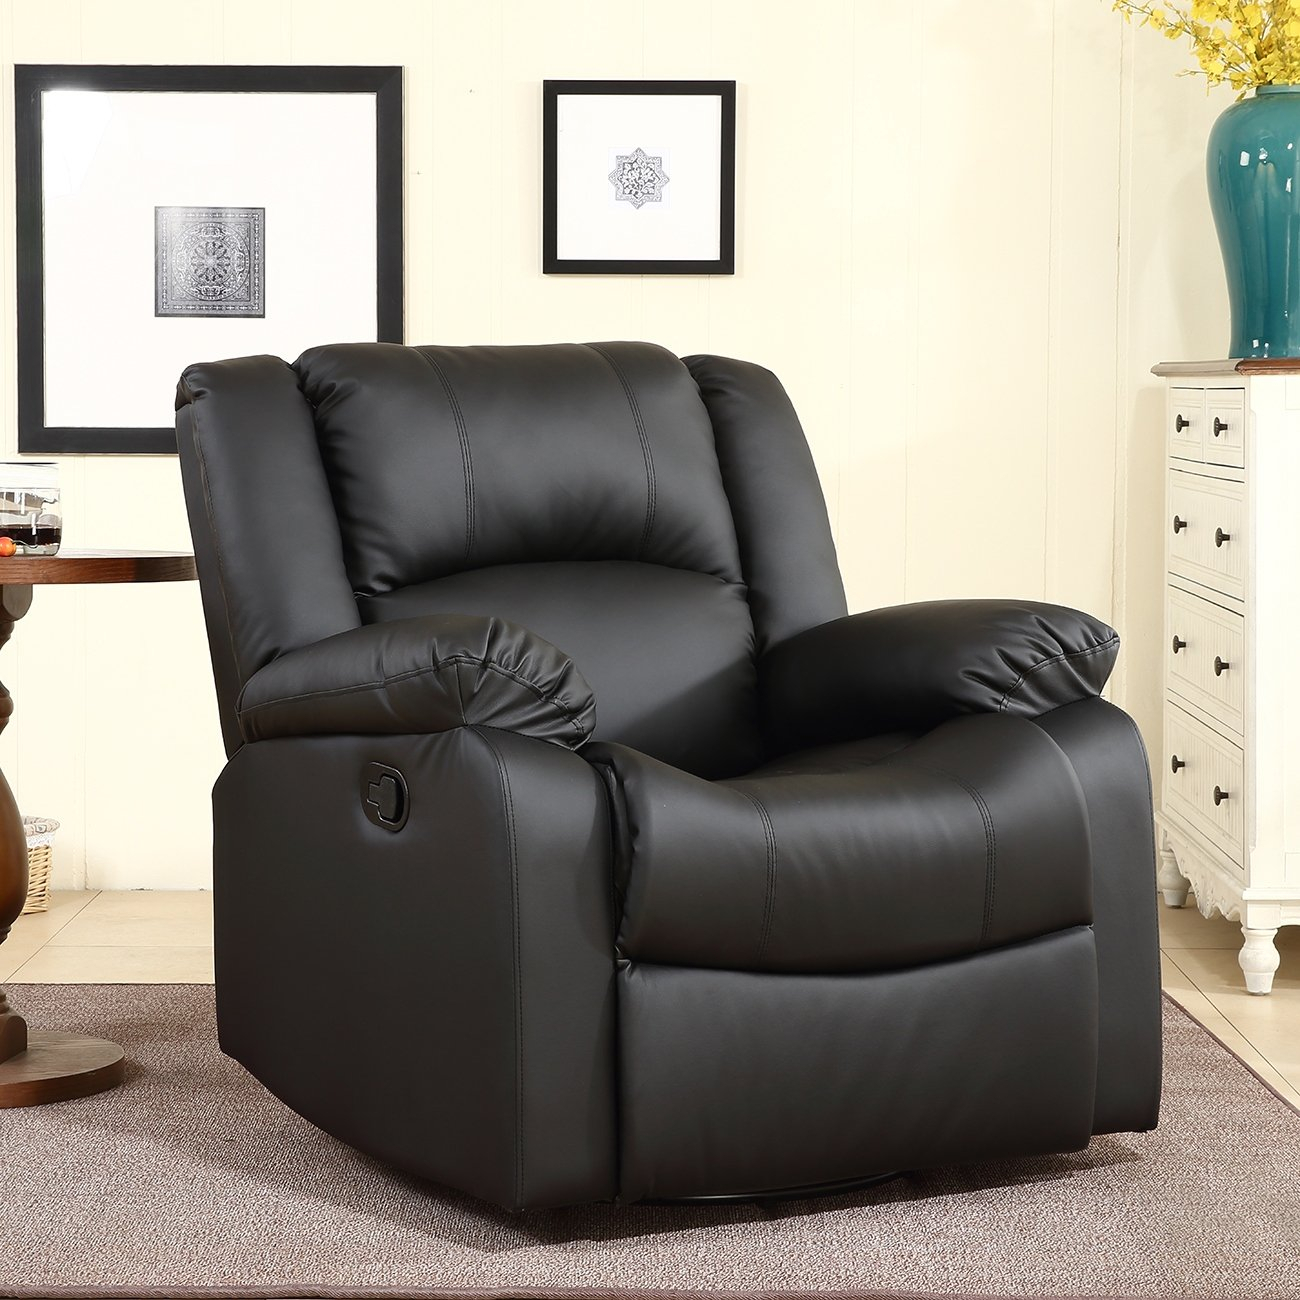 Belleze Swivel Glider Rocker Recliner Chair Overstuffed Armrest And  Backrest Faux Leather, Black With Regard To Gannon Linen Power Swivel Recliners (Image 1 of 20)